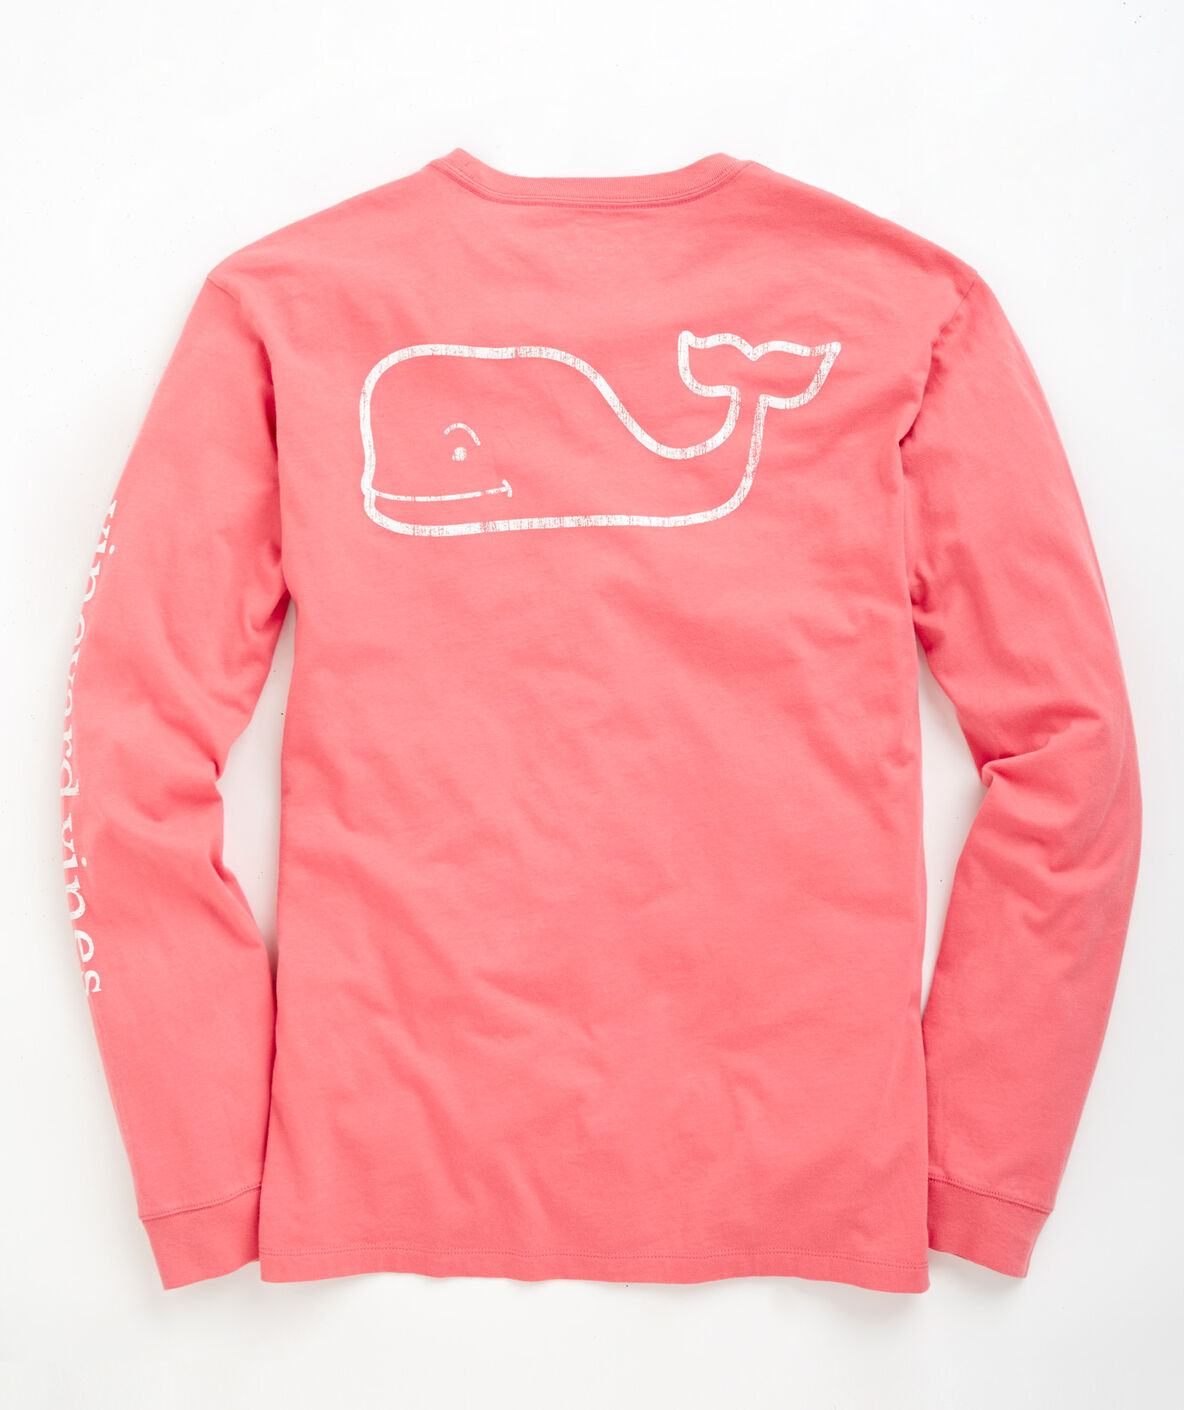 shop long sleeve vintage whale graphic pocket t shirt at